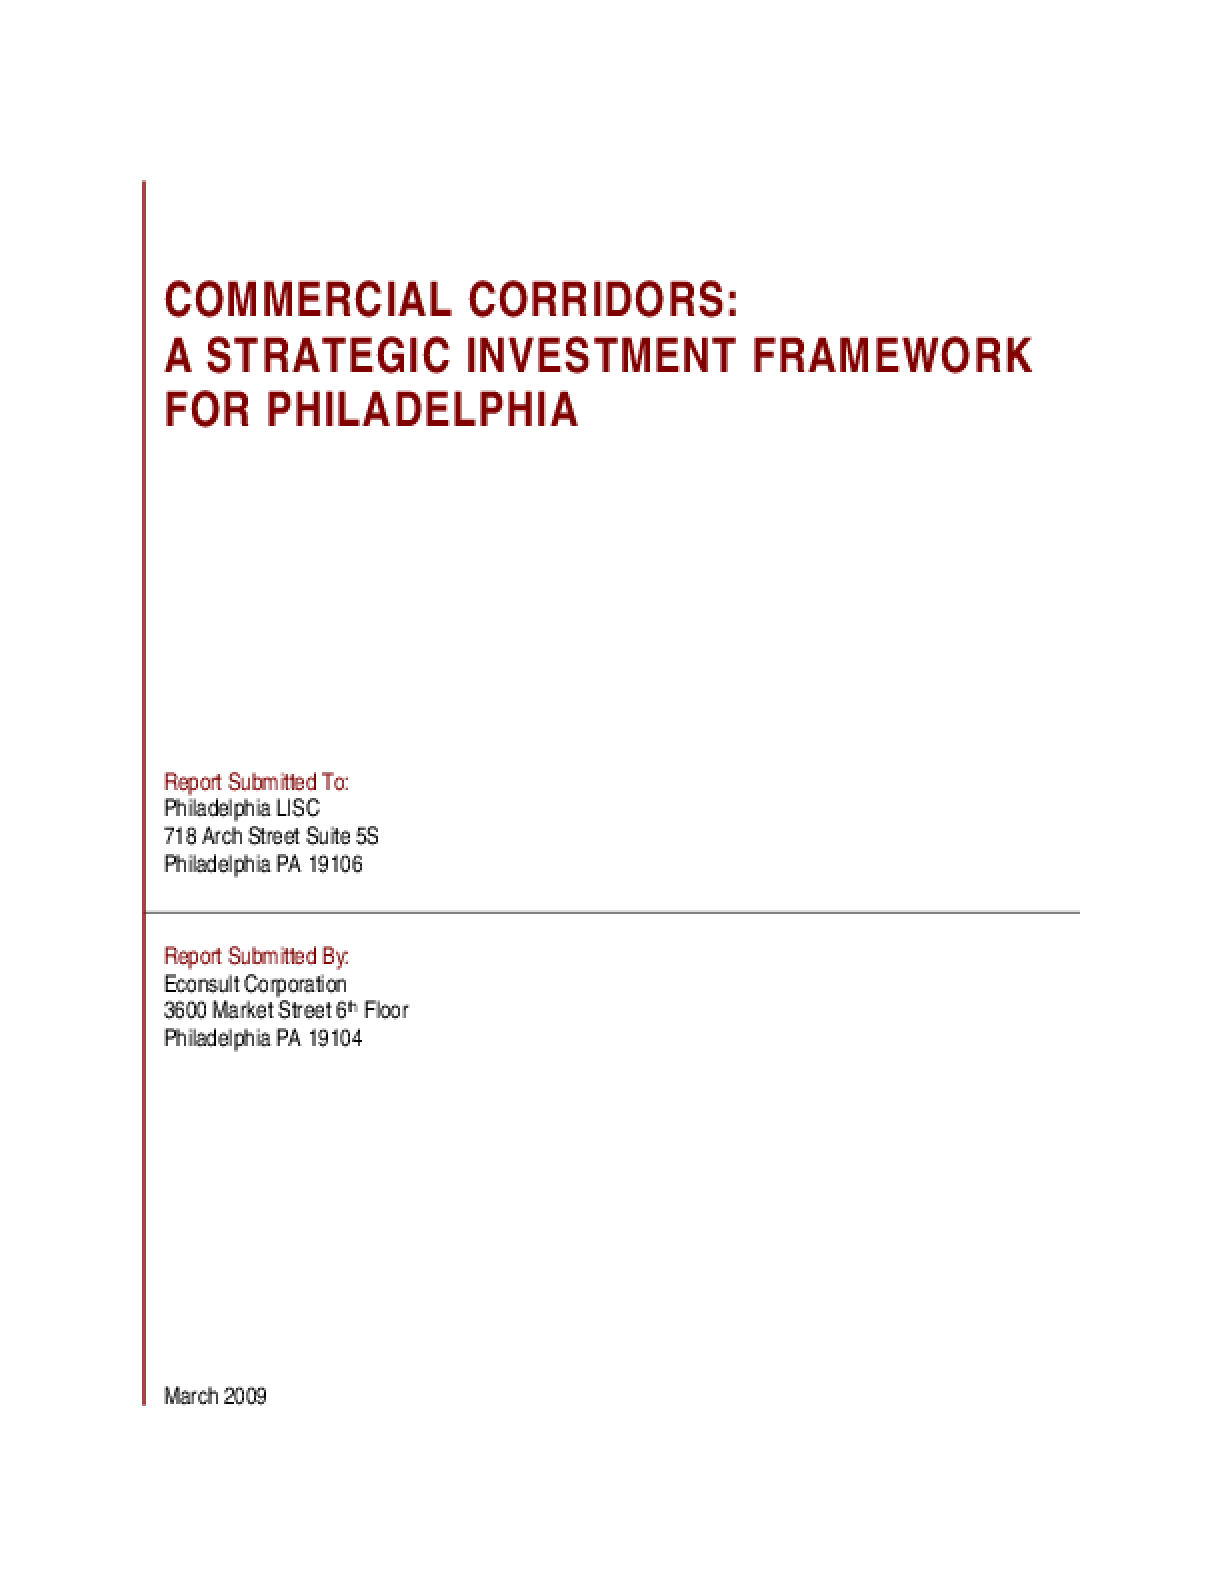 Commercial Corridors: A Strategic Investment Framework for Philadelphia